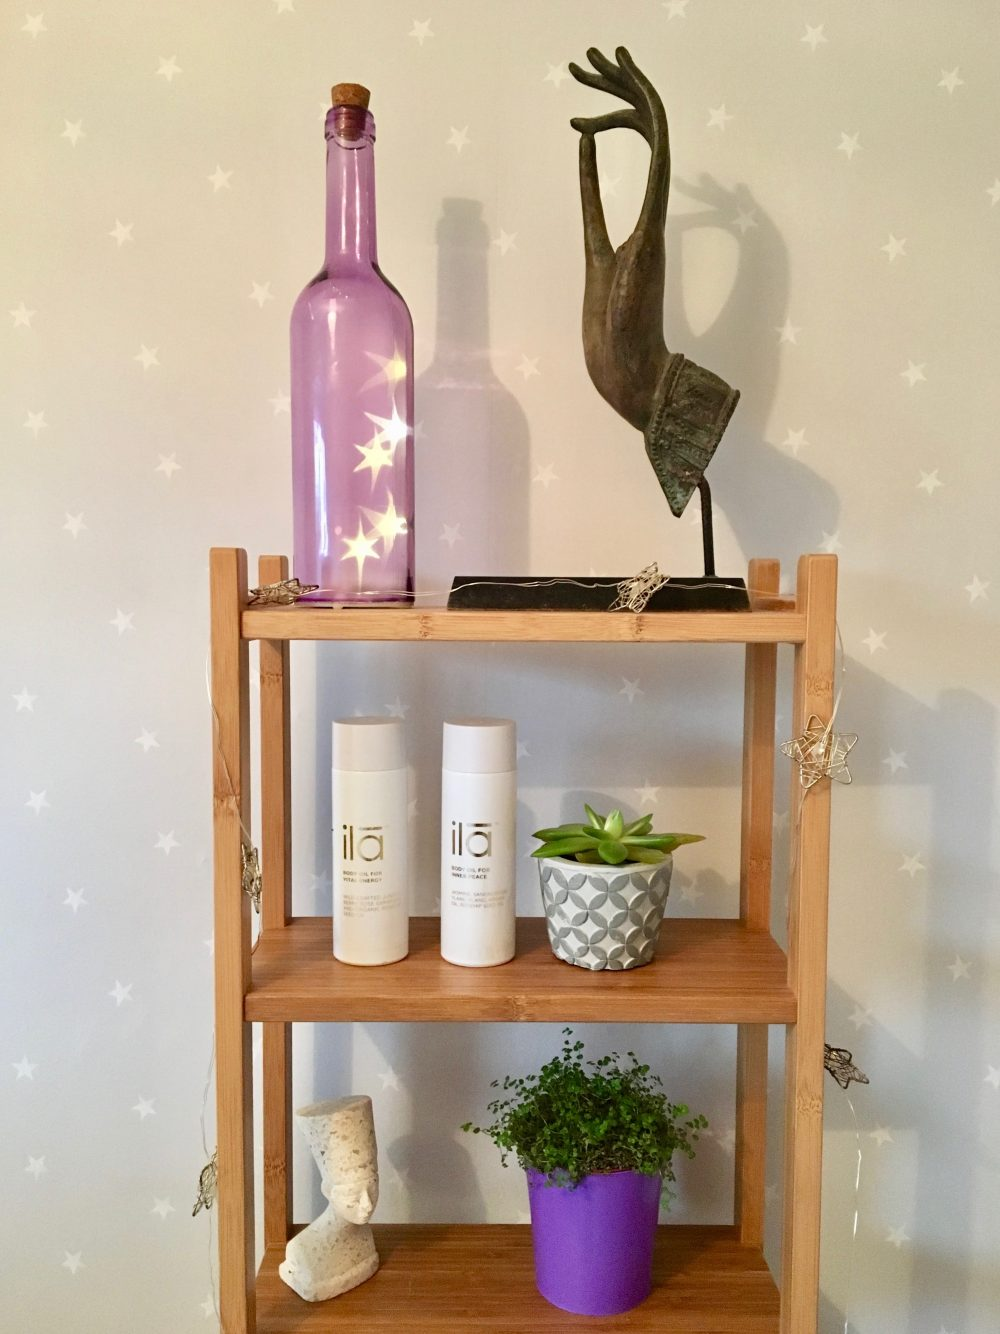 ila spa products on shelf